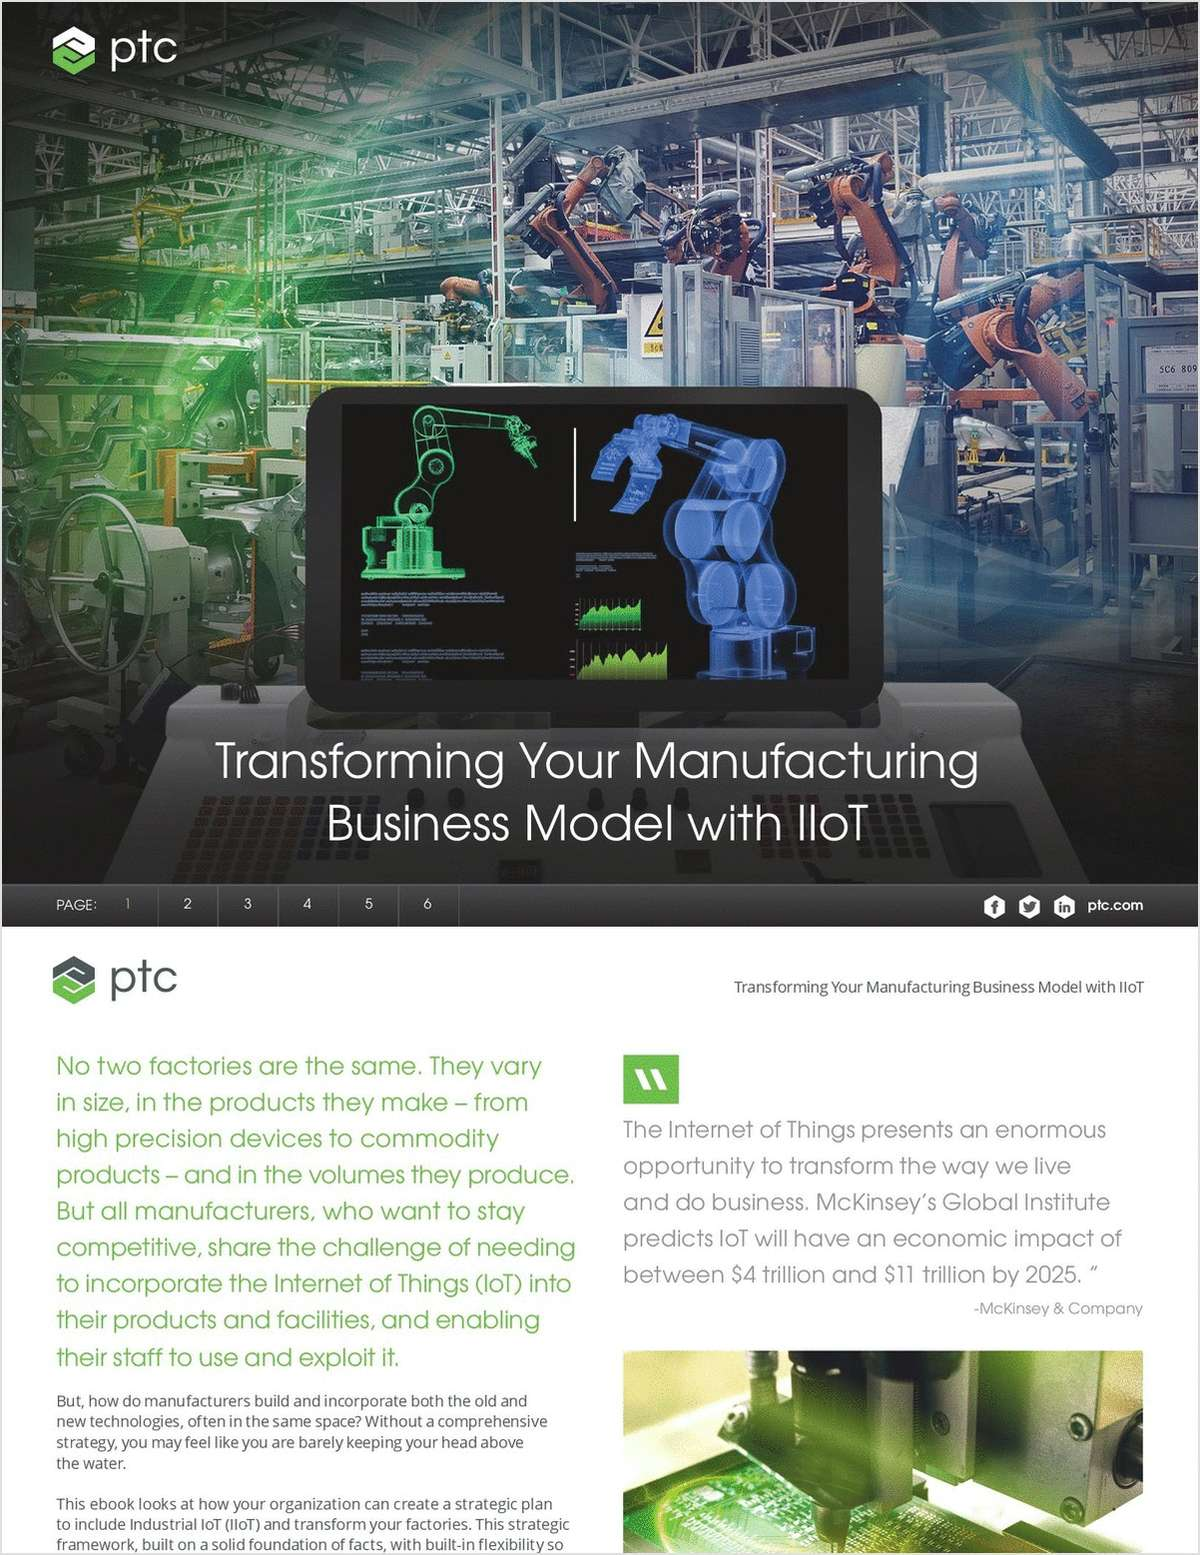 Transforming Your Manufacturing Business Model with IIoT